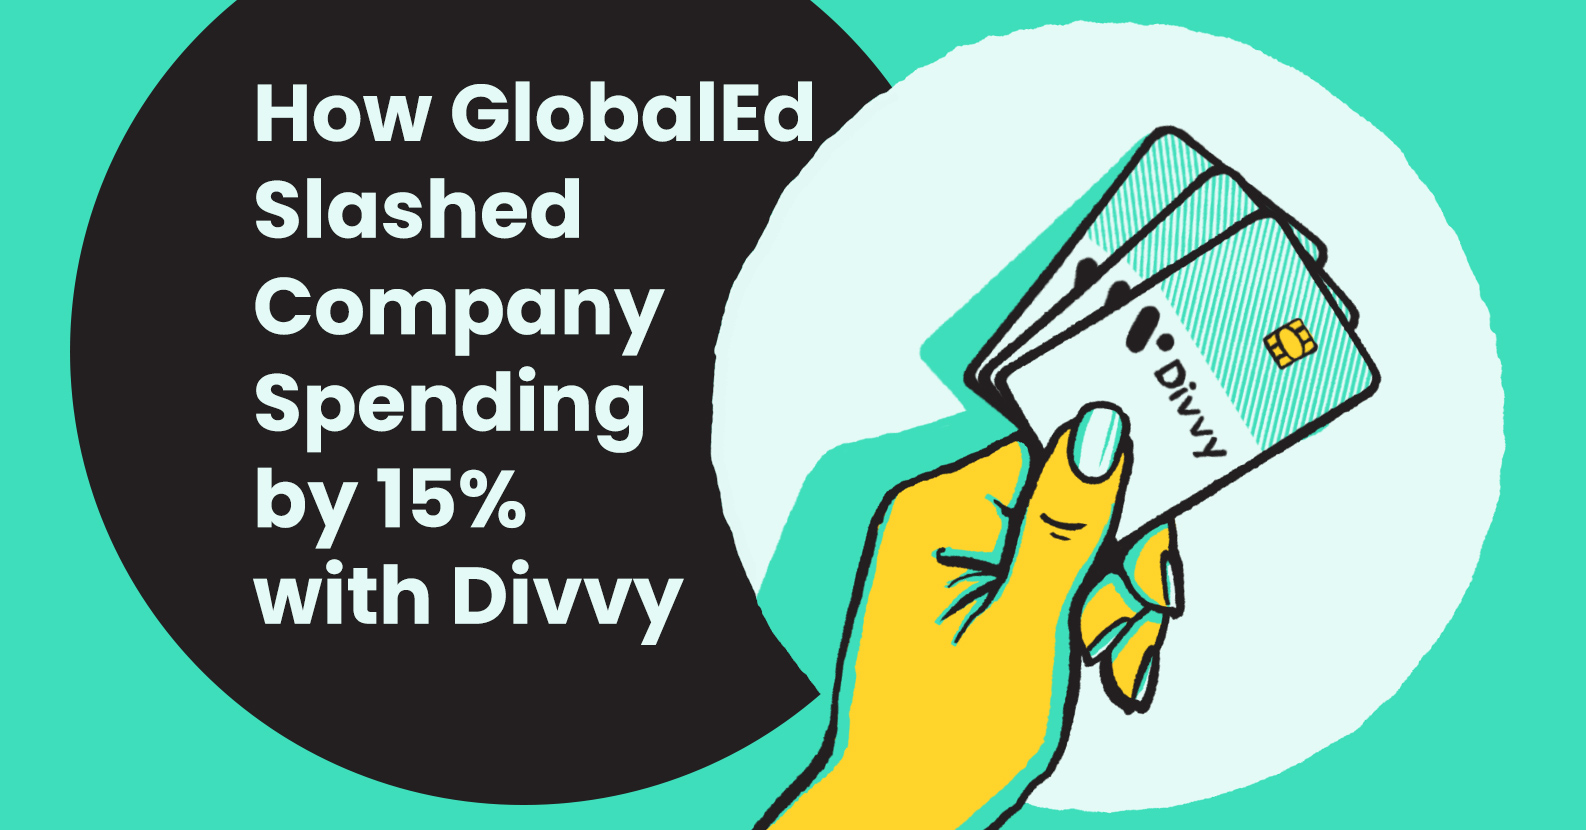 How GlobalEd Slashed Company Spending by 15% with Divvy